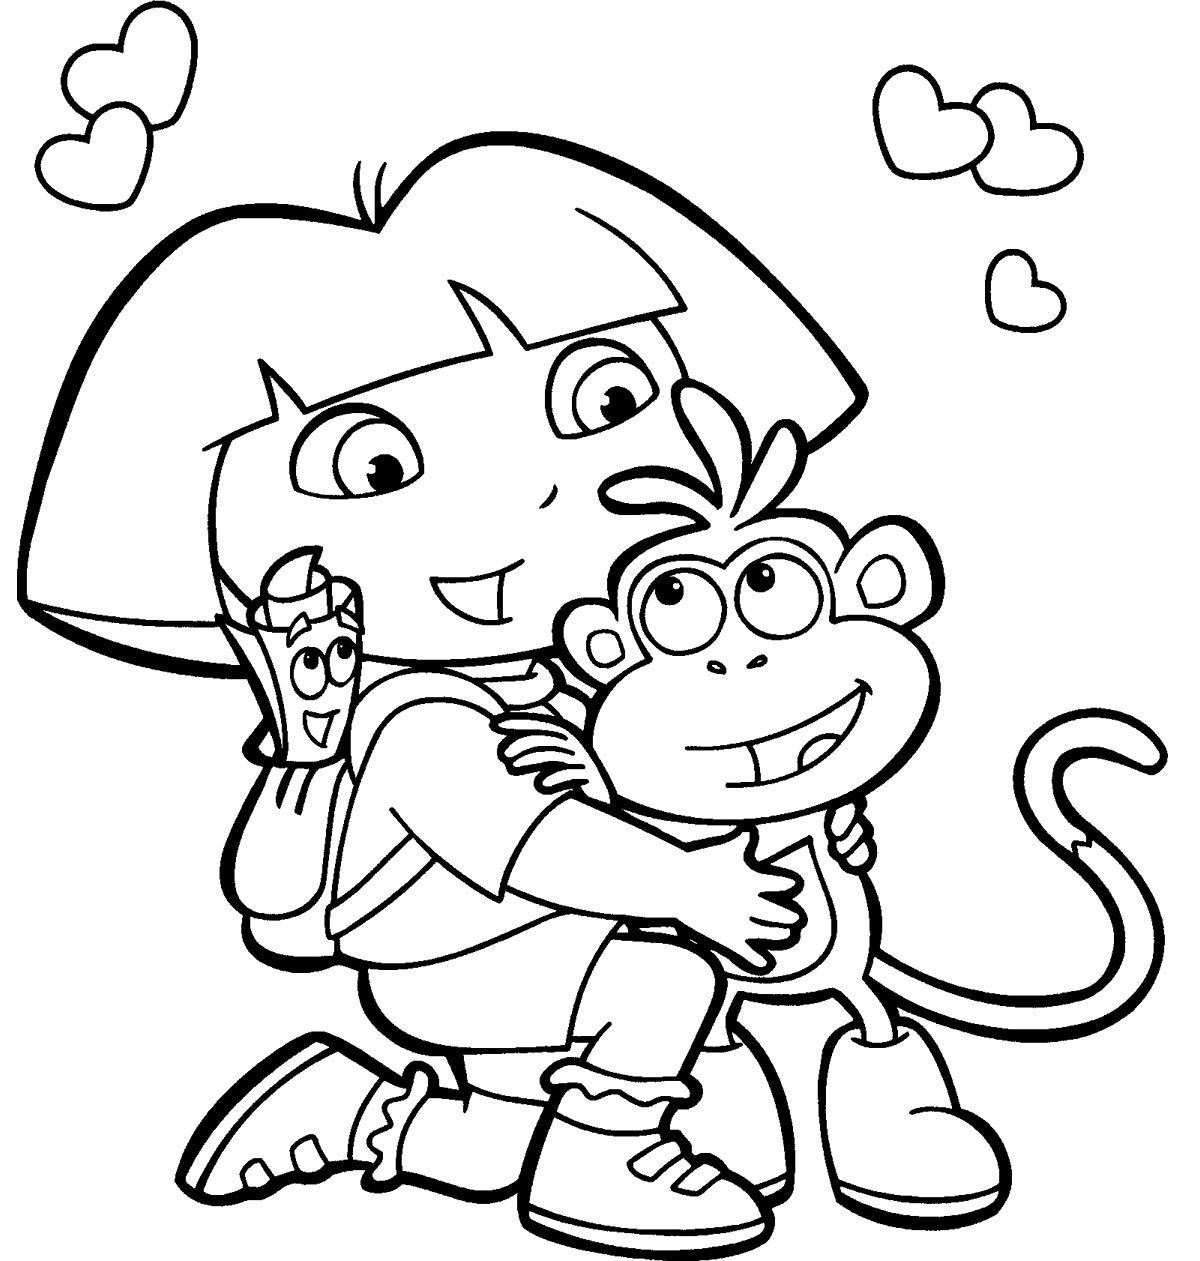 Dora Coloring Pages Free Dora And Boots Coloring Pages Free Dora And Friends Coloring Pages Free Cartoon Coloring Pages Dora Coloring Monkey Coloring Pages